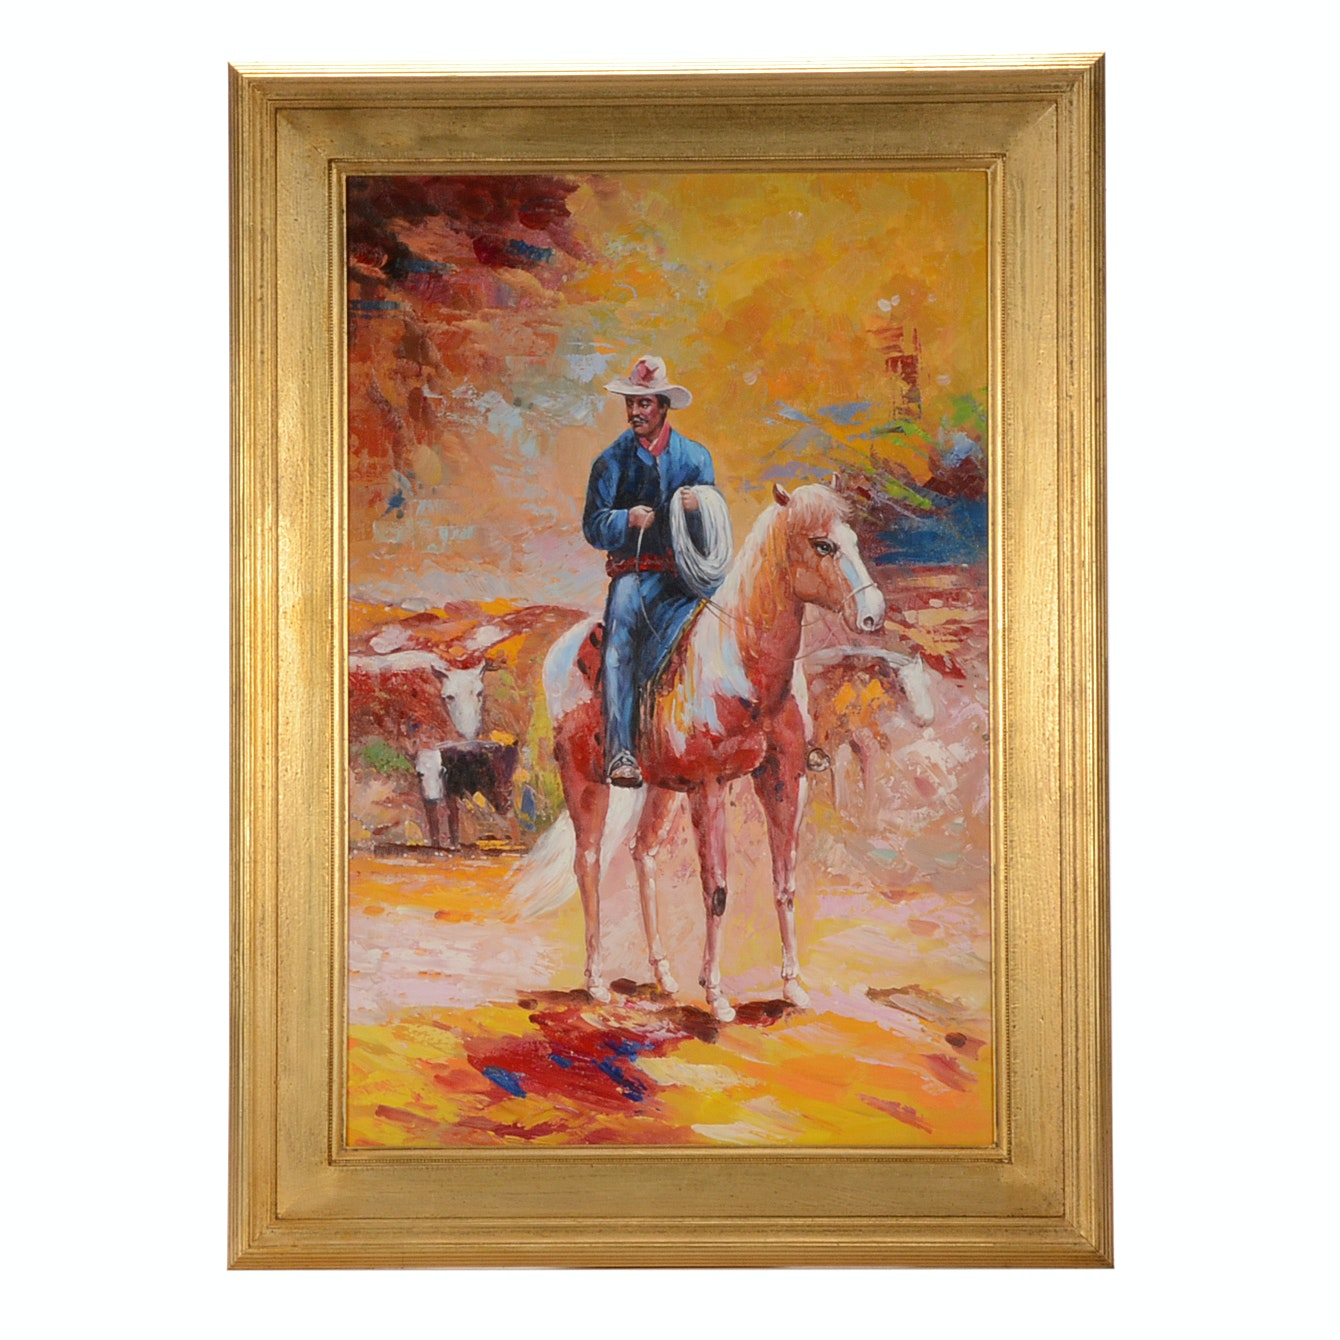 Original Acrylic on Canvas Painting of a Rancher